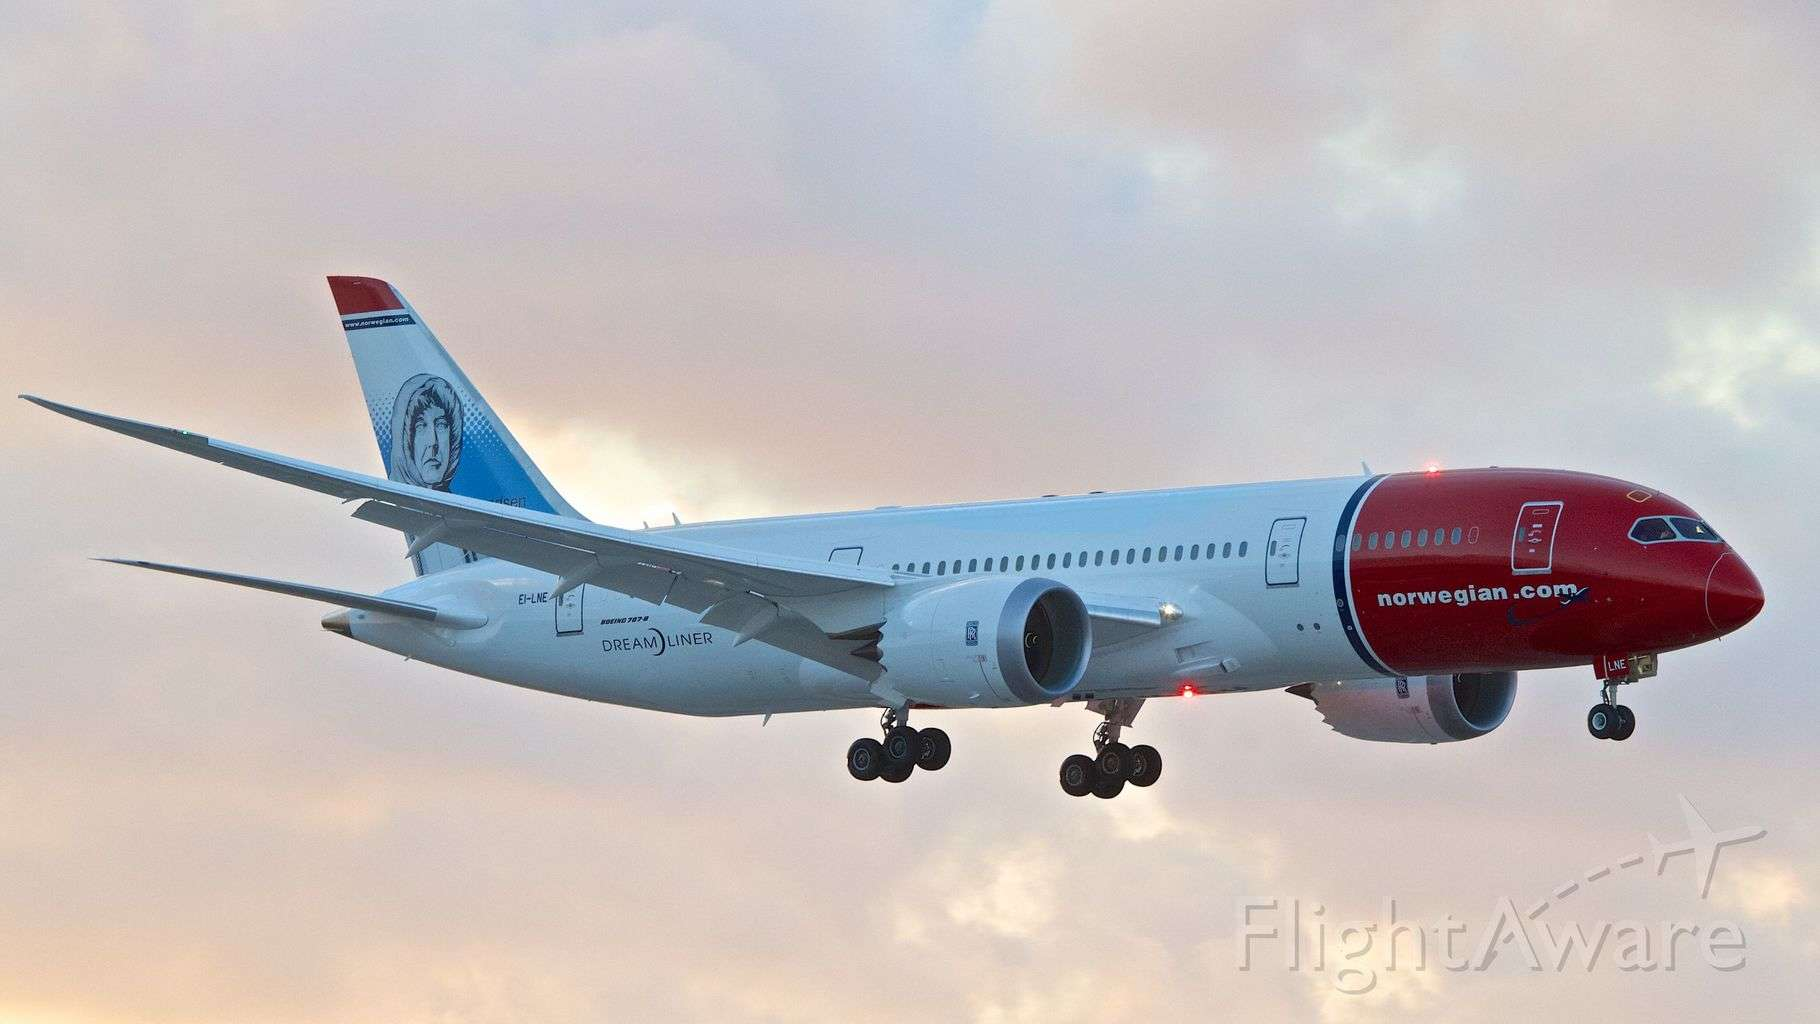 Edinburgh to get direct flights to the US thanks to Norwegian Long Haul